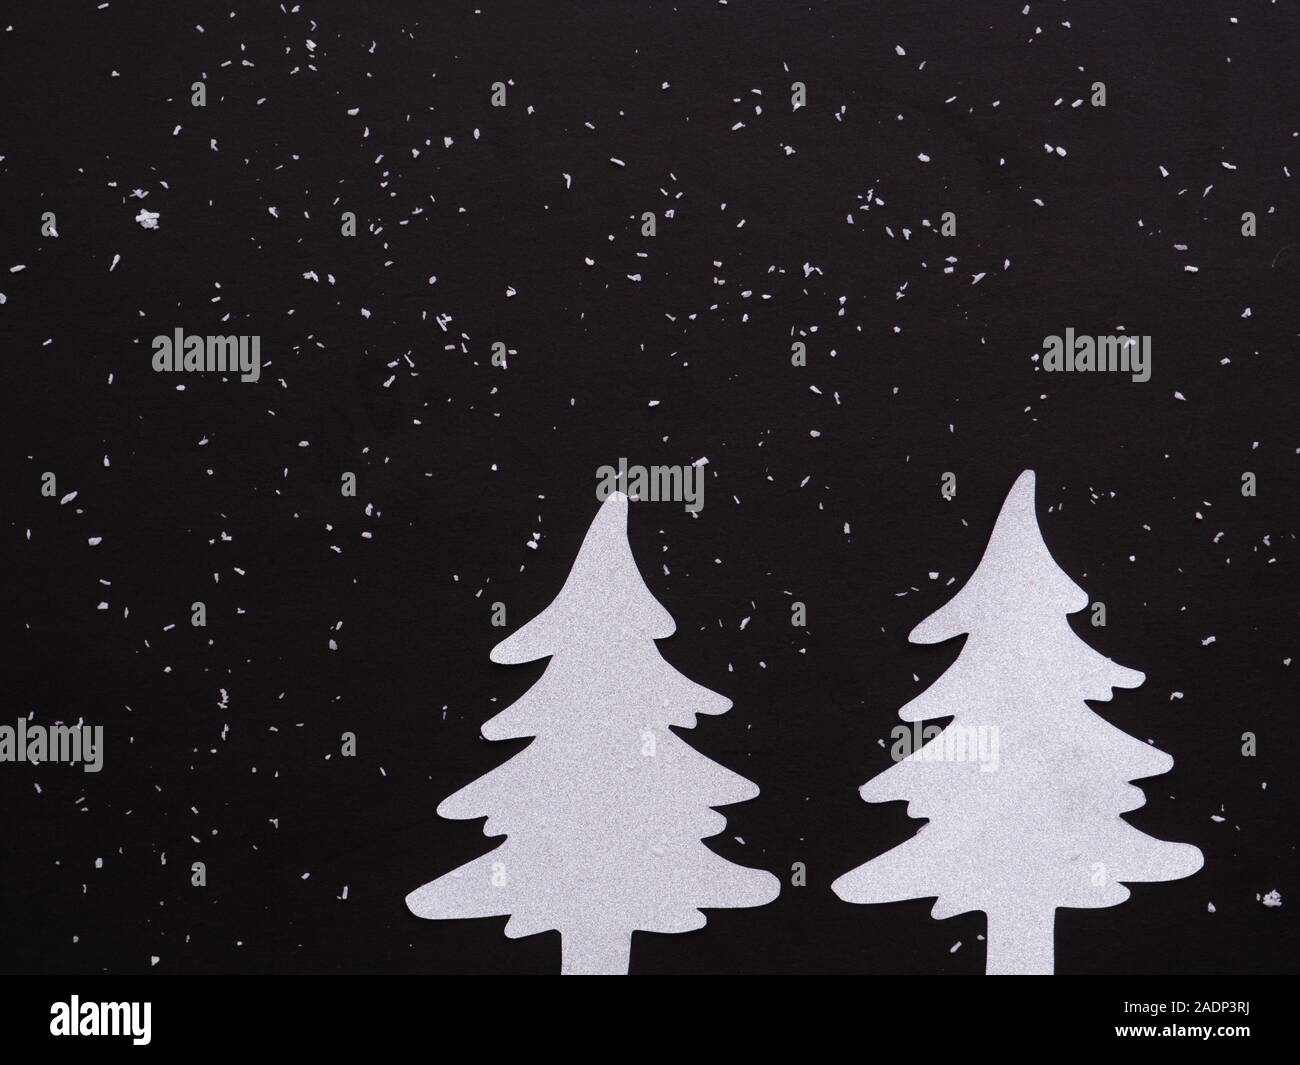 Seamless Black Christmas Wallpaper White High Resolution Stock Photography And Images Alamy